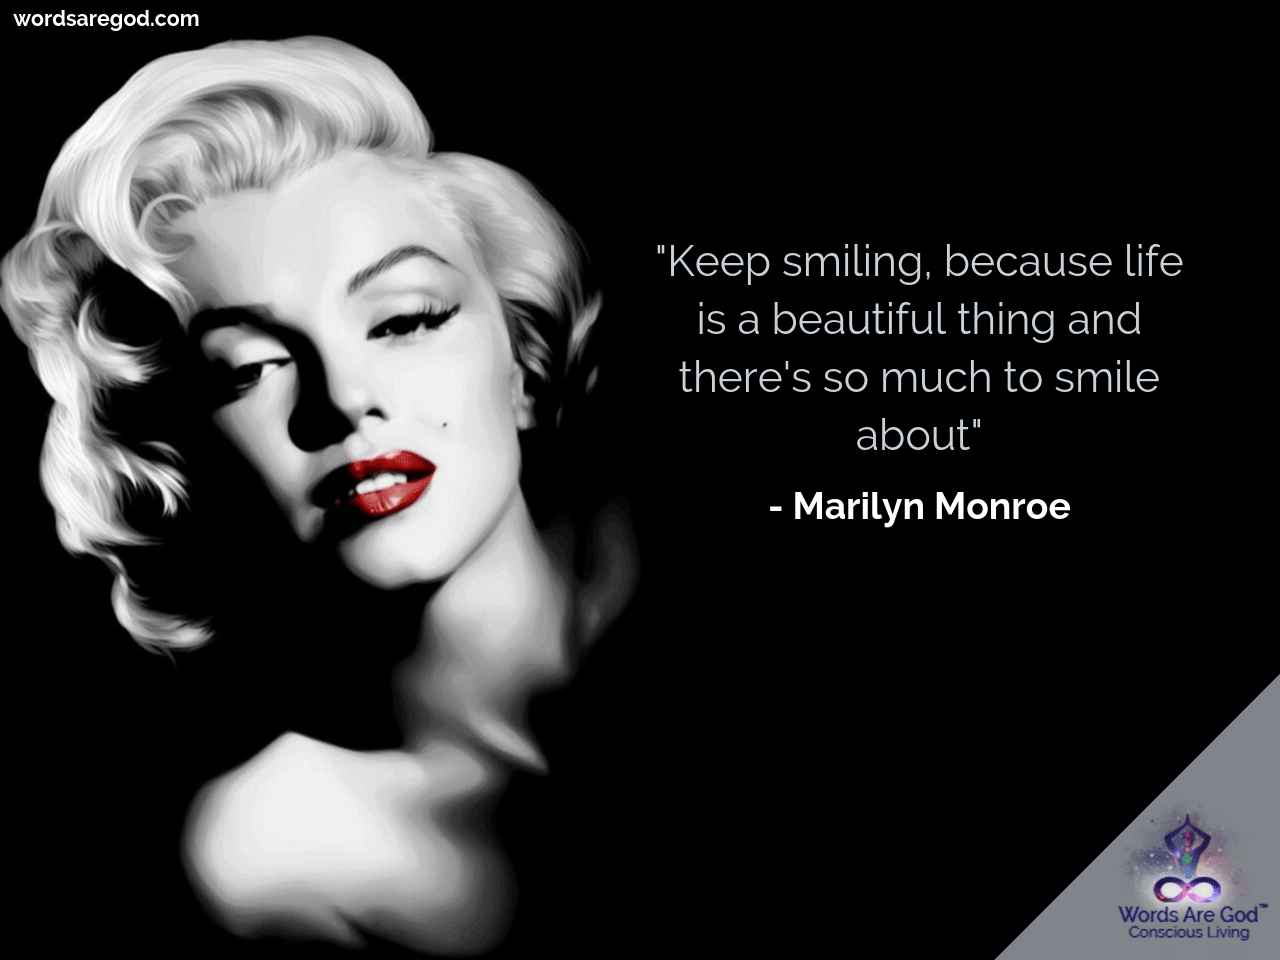 Marilyn Monroe Inspirational Quote by Marilyn Monroe